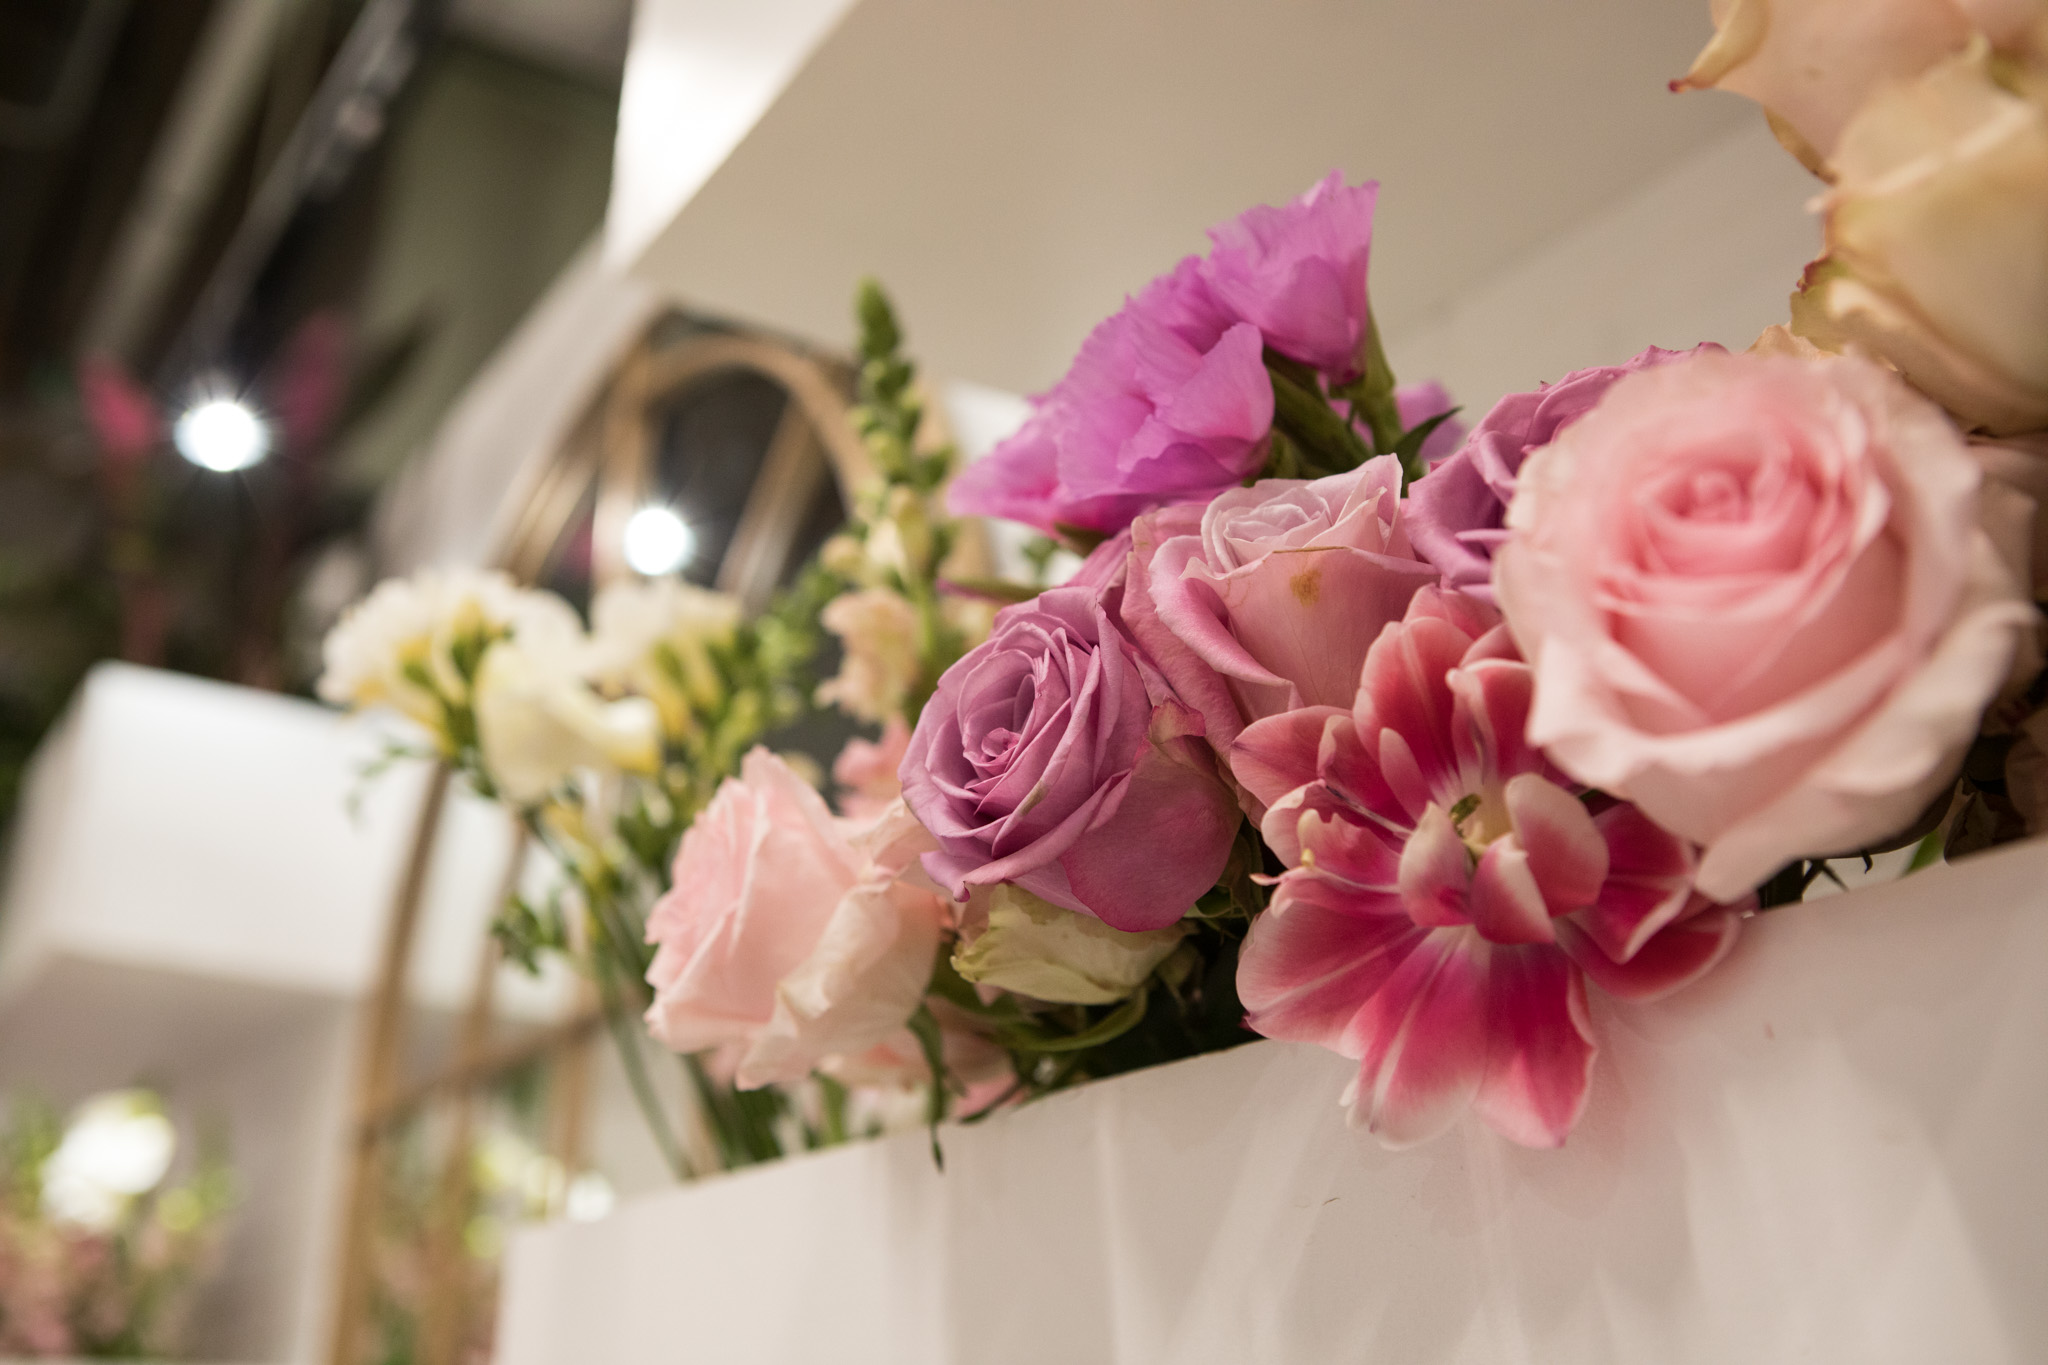 Flowers line the walls of The Vintage Bouquet Bar.